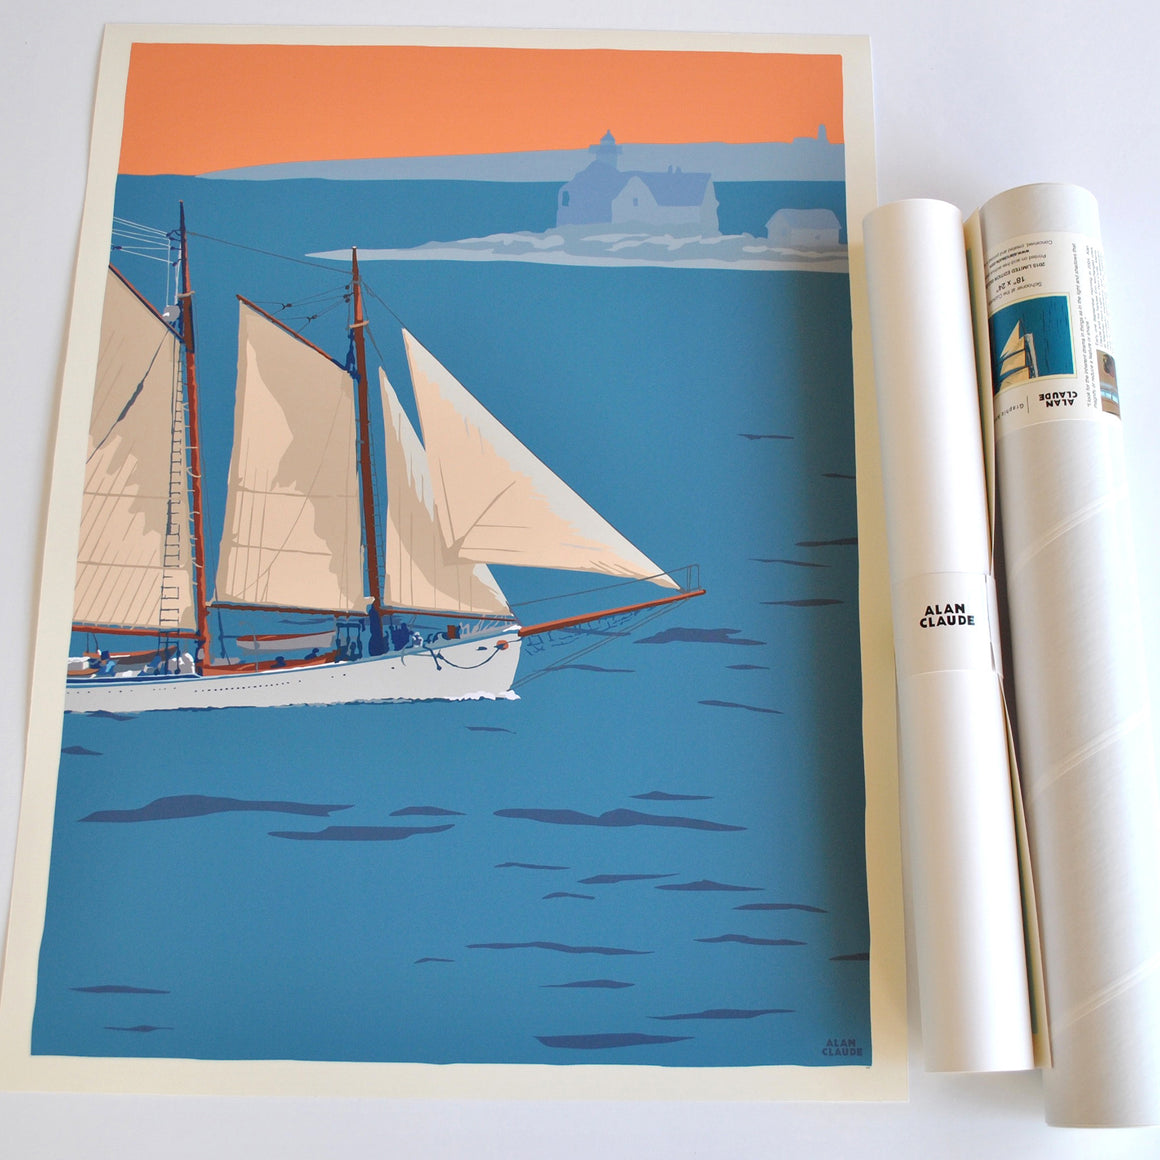 "Schooner at the Cuckolds Art Print 18"" x 24"" Wall Poster - Maine"